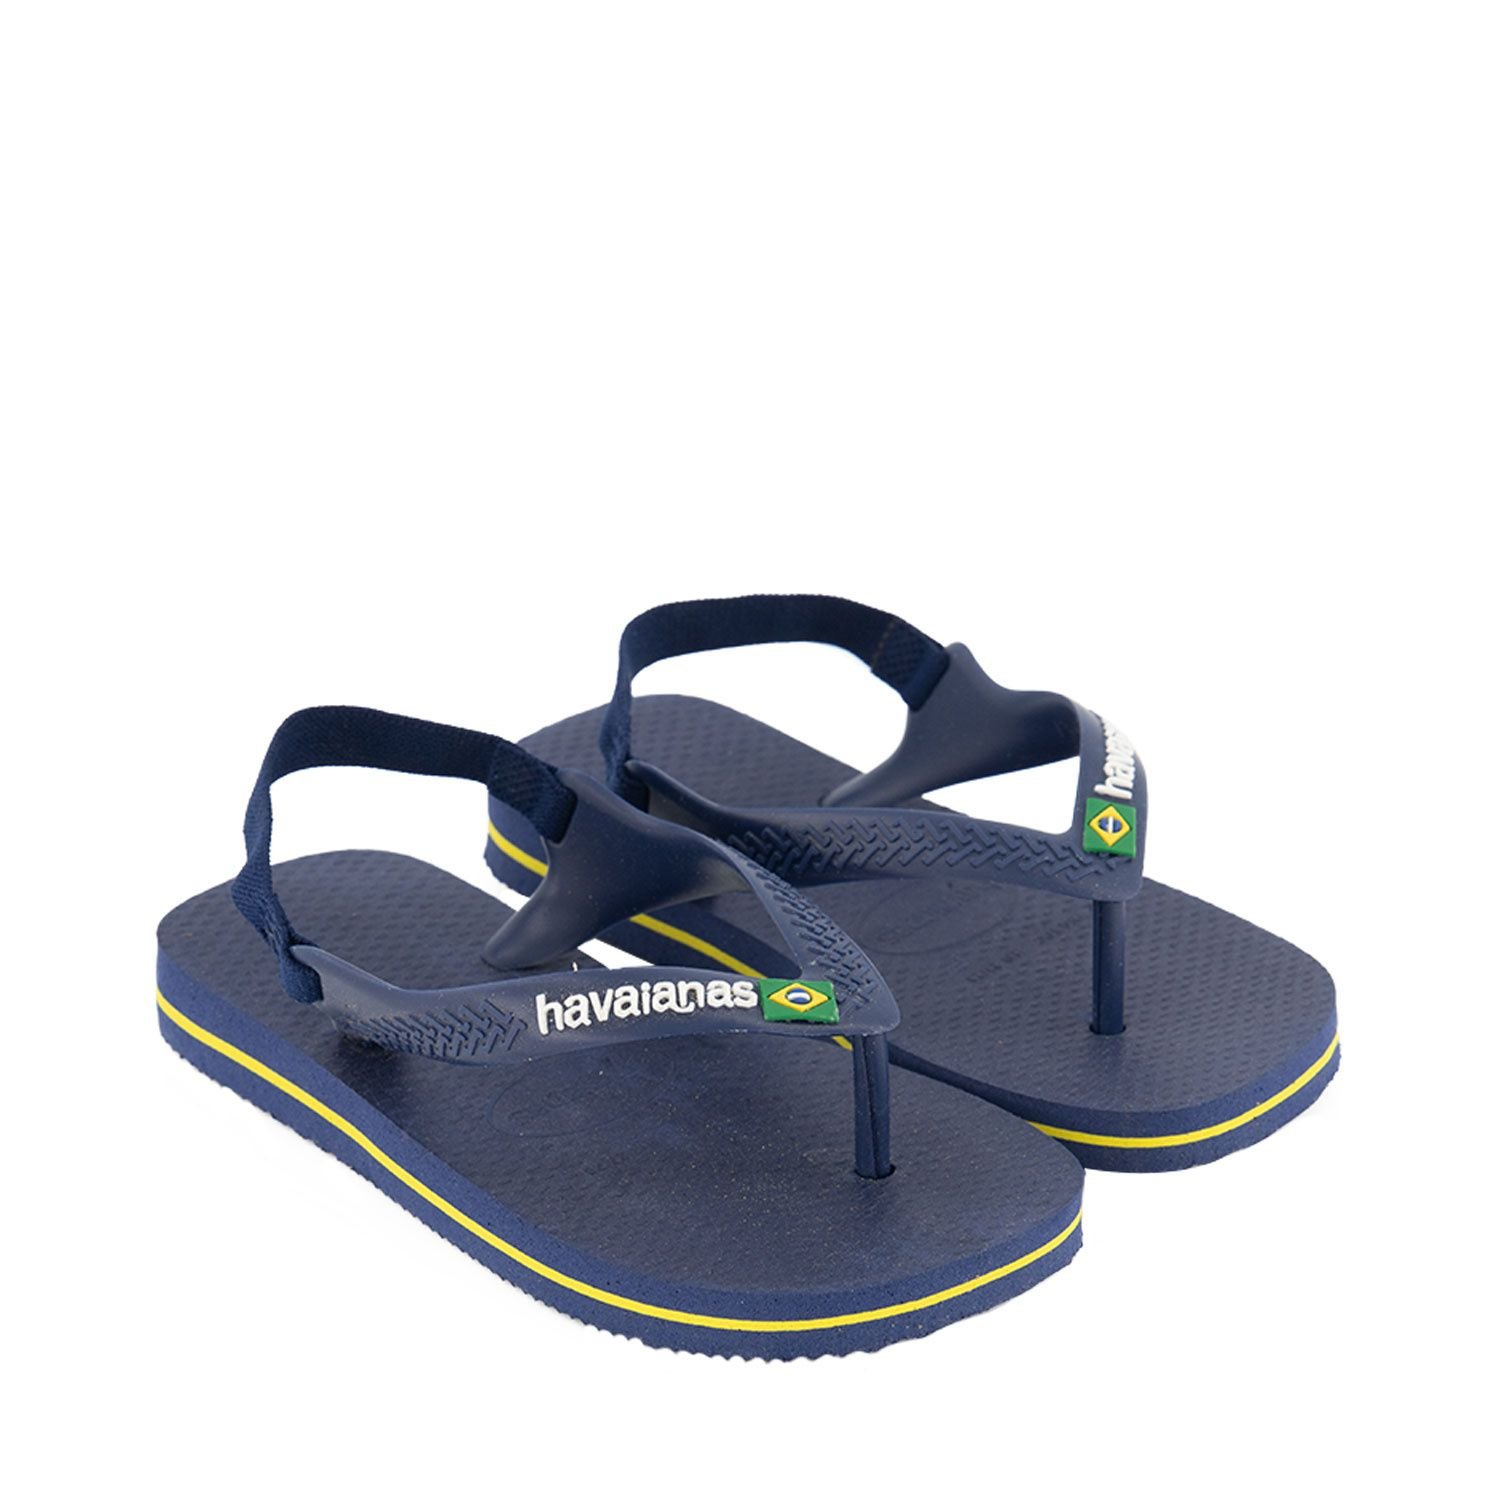 Picture of Havaianas 4140577 kids flipflops navy